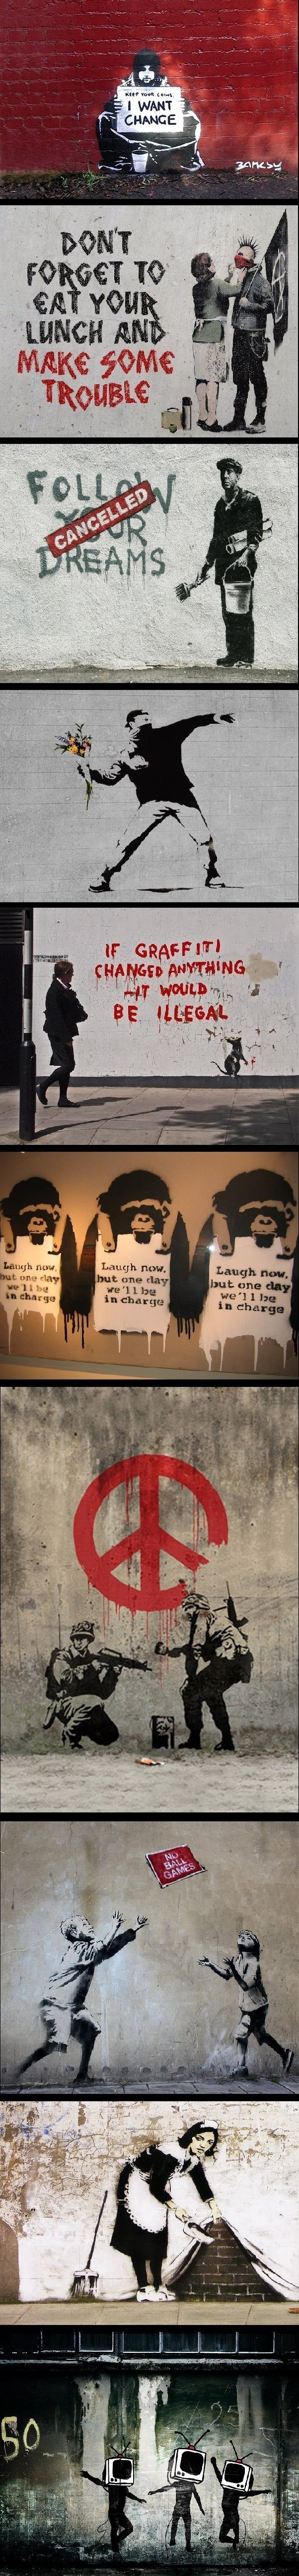 Banksy !! In love with all of his work ..